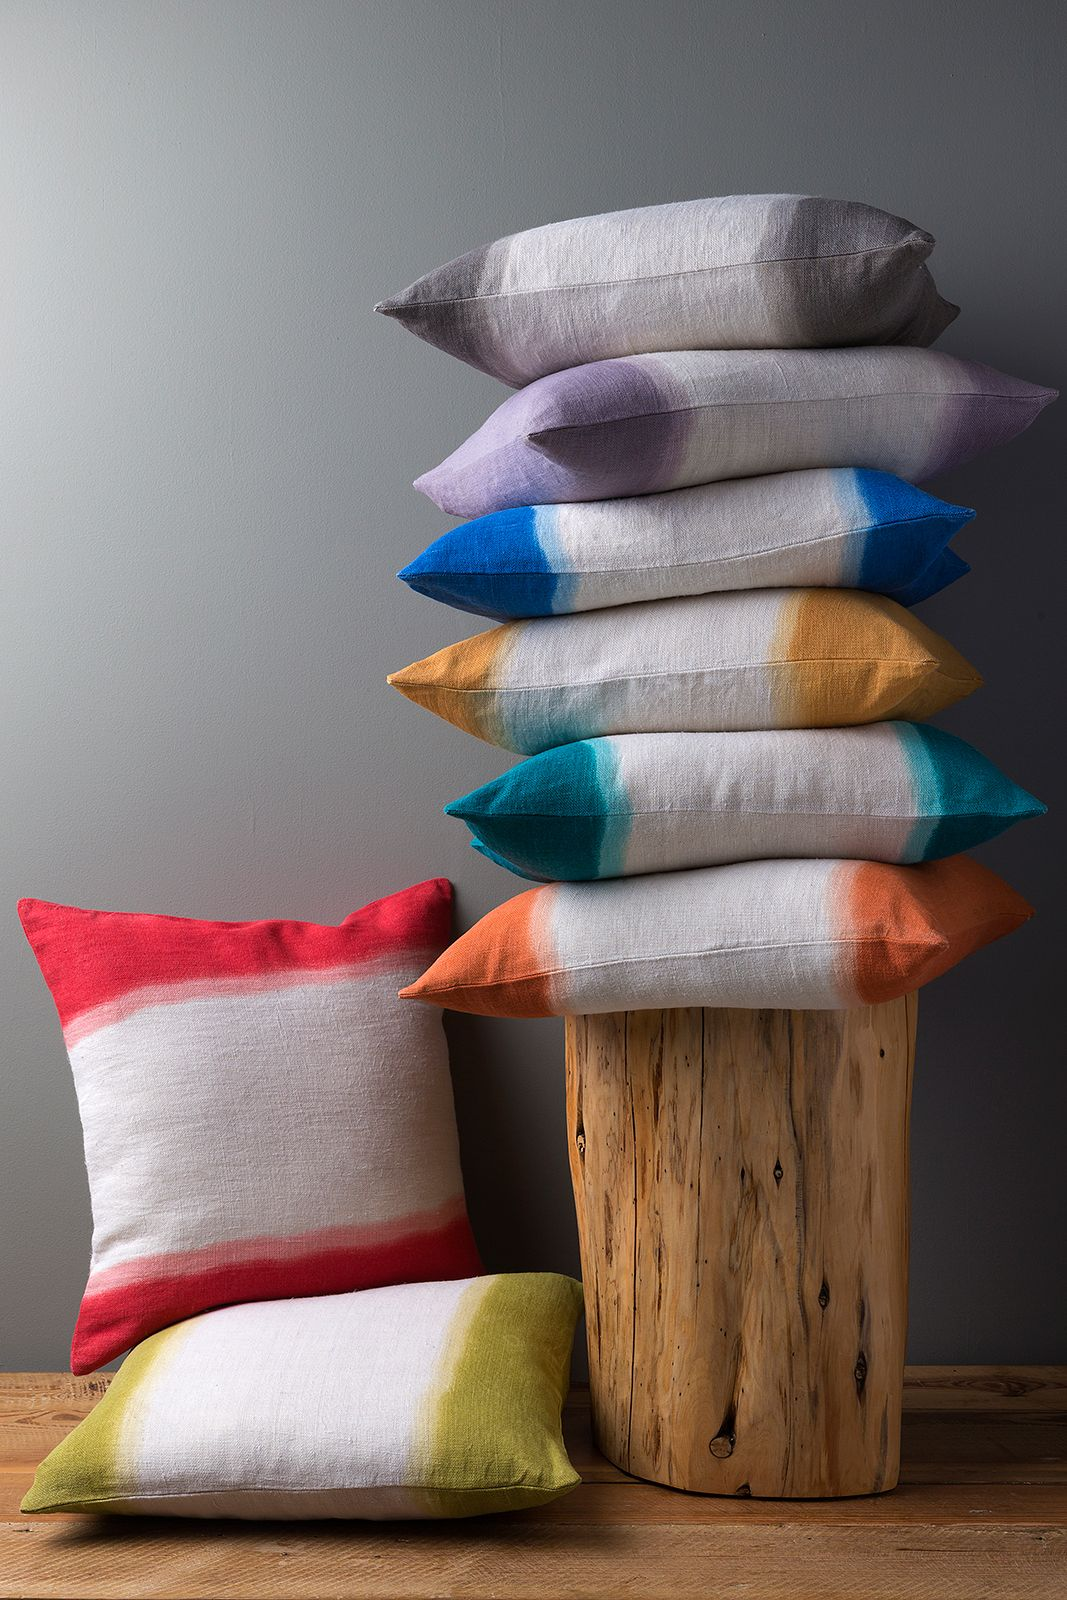 Dip dyed pillows on natural linen creates the ultimate ombre effect.